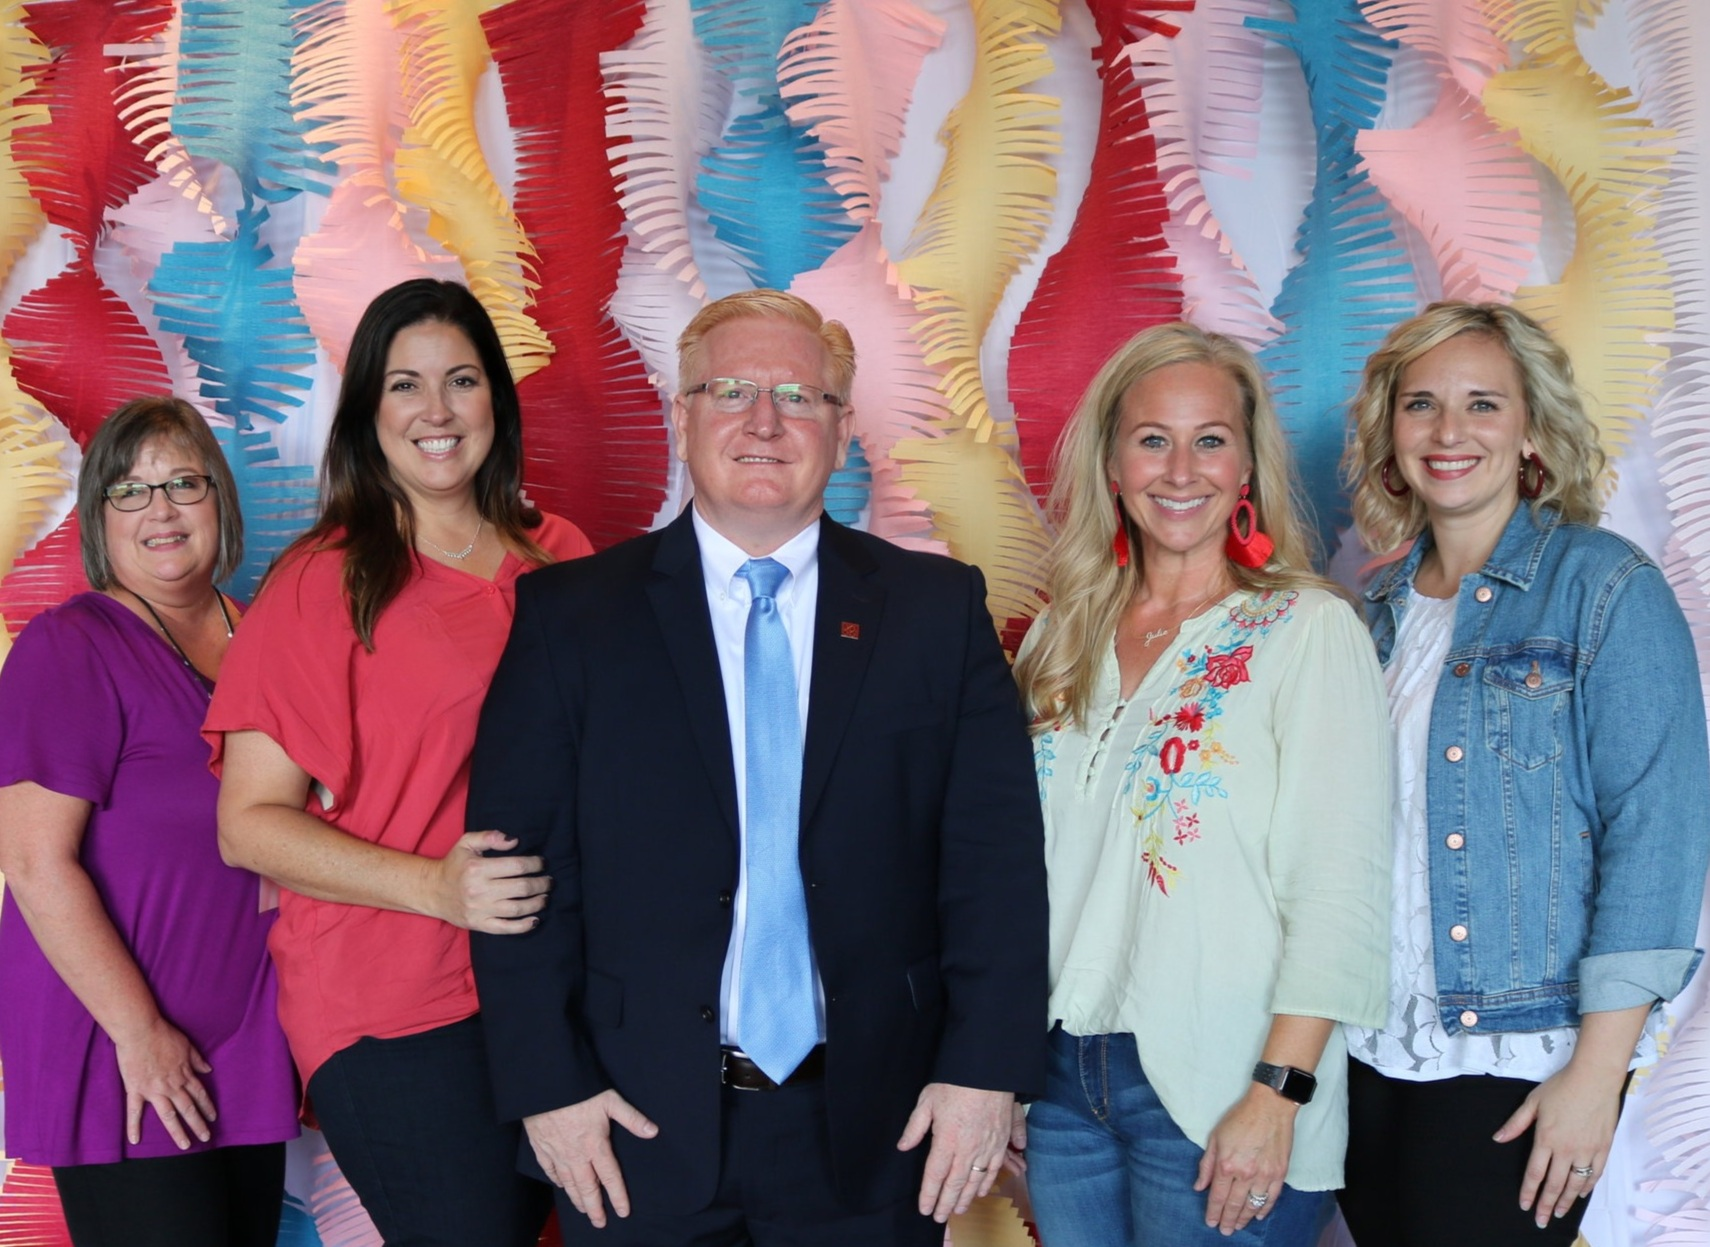 Dr. Rick Bateman, Chancellor of Bossier Parish Community College with the Career Compass Executive Leadership Team.